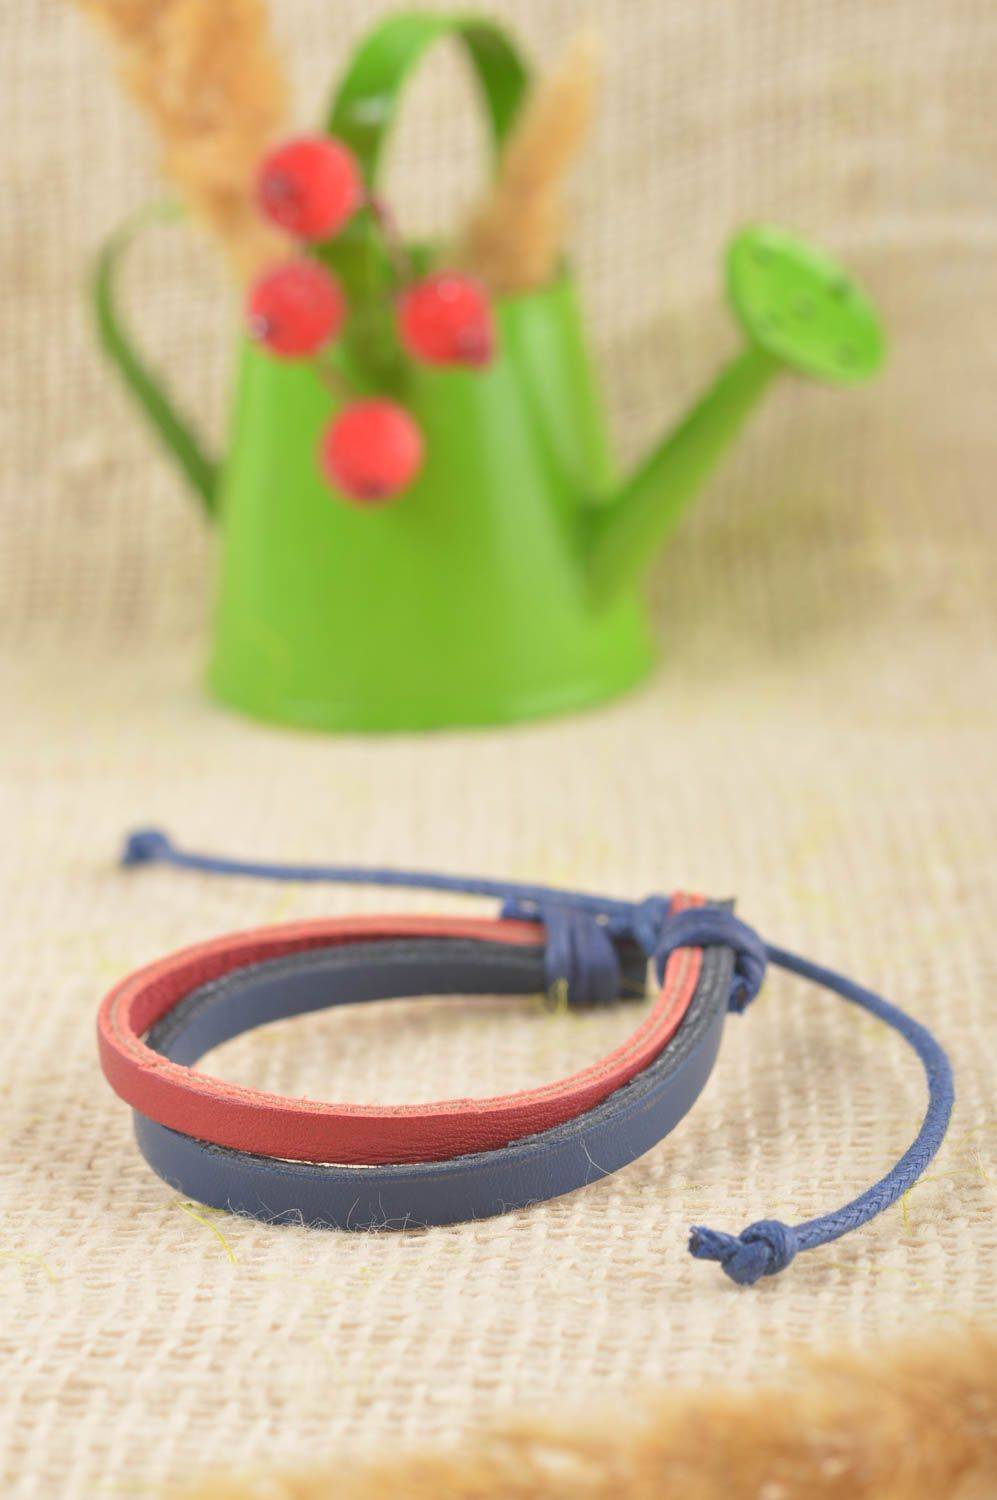 Stylish handmade leather bracelet wrist bracelet designs cool jewelry photo 1